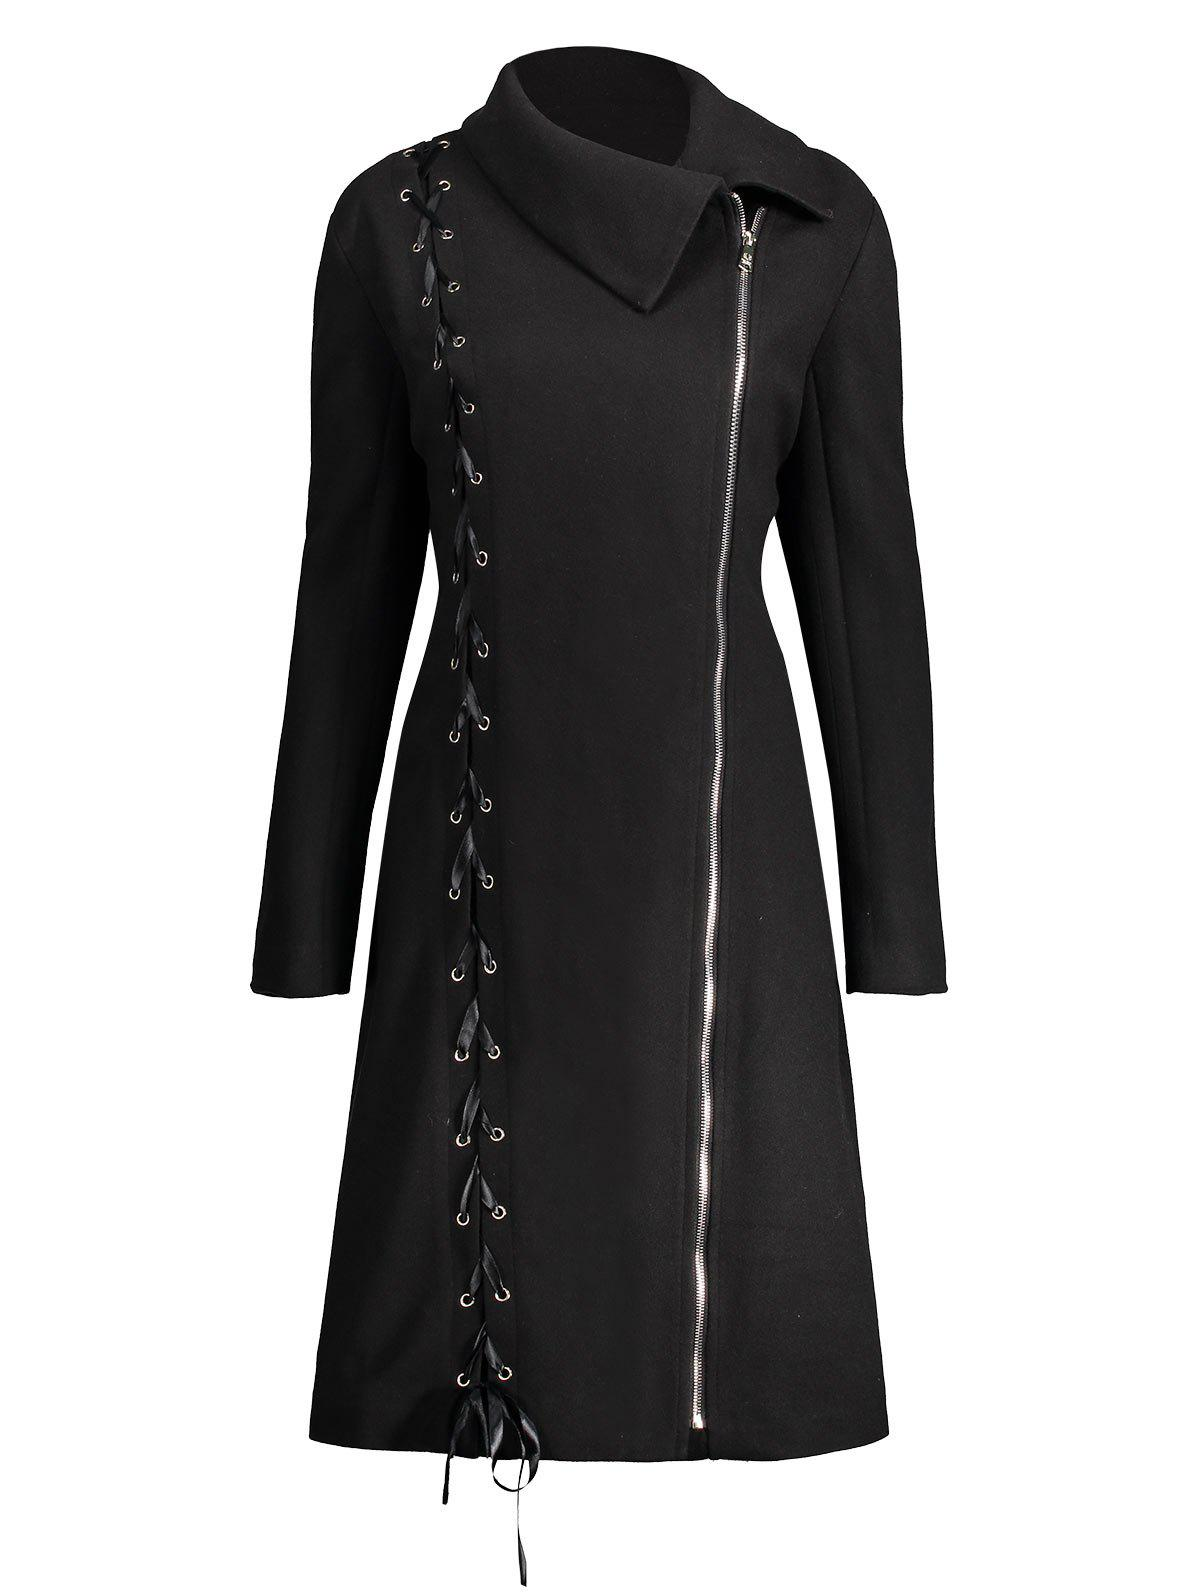 Zip Up Plus Size Lace Up CoatWOMEN<br><br>Size: XL; Color: BLACK; Clothes Type: Others; Material: Cotton Blends,Polyester,Spandex; Type: Slim; Shirt Length: Long; Sleeve Length: Full; Collar: Lapel; Pattern Type: Solid; Style: Fashion; Season: Fall,Winter; Weight: 1.0900kg; Package Contents: 1 x Coat;